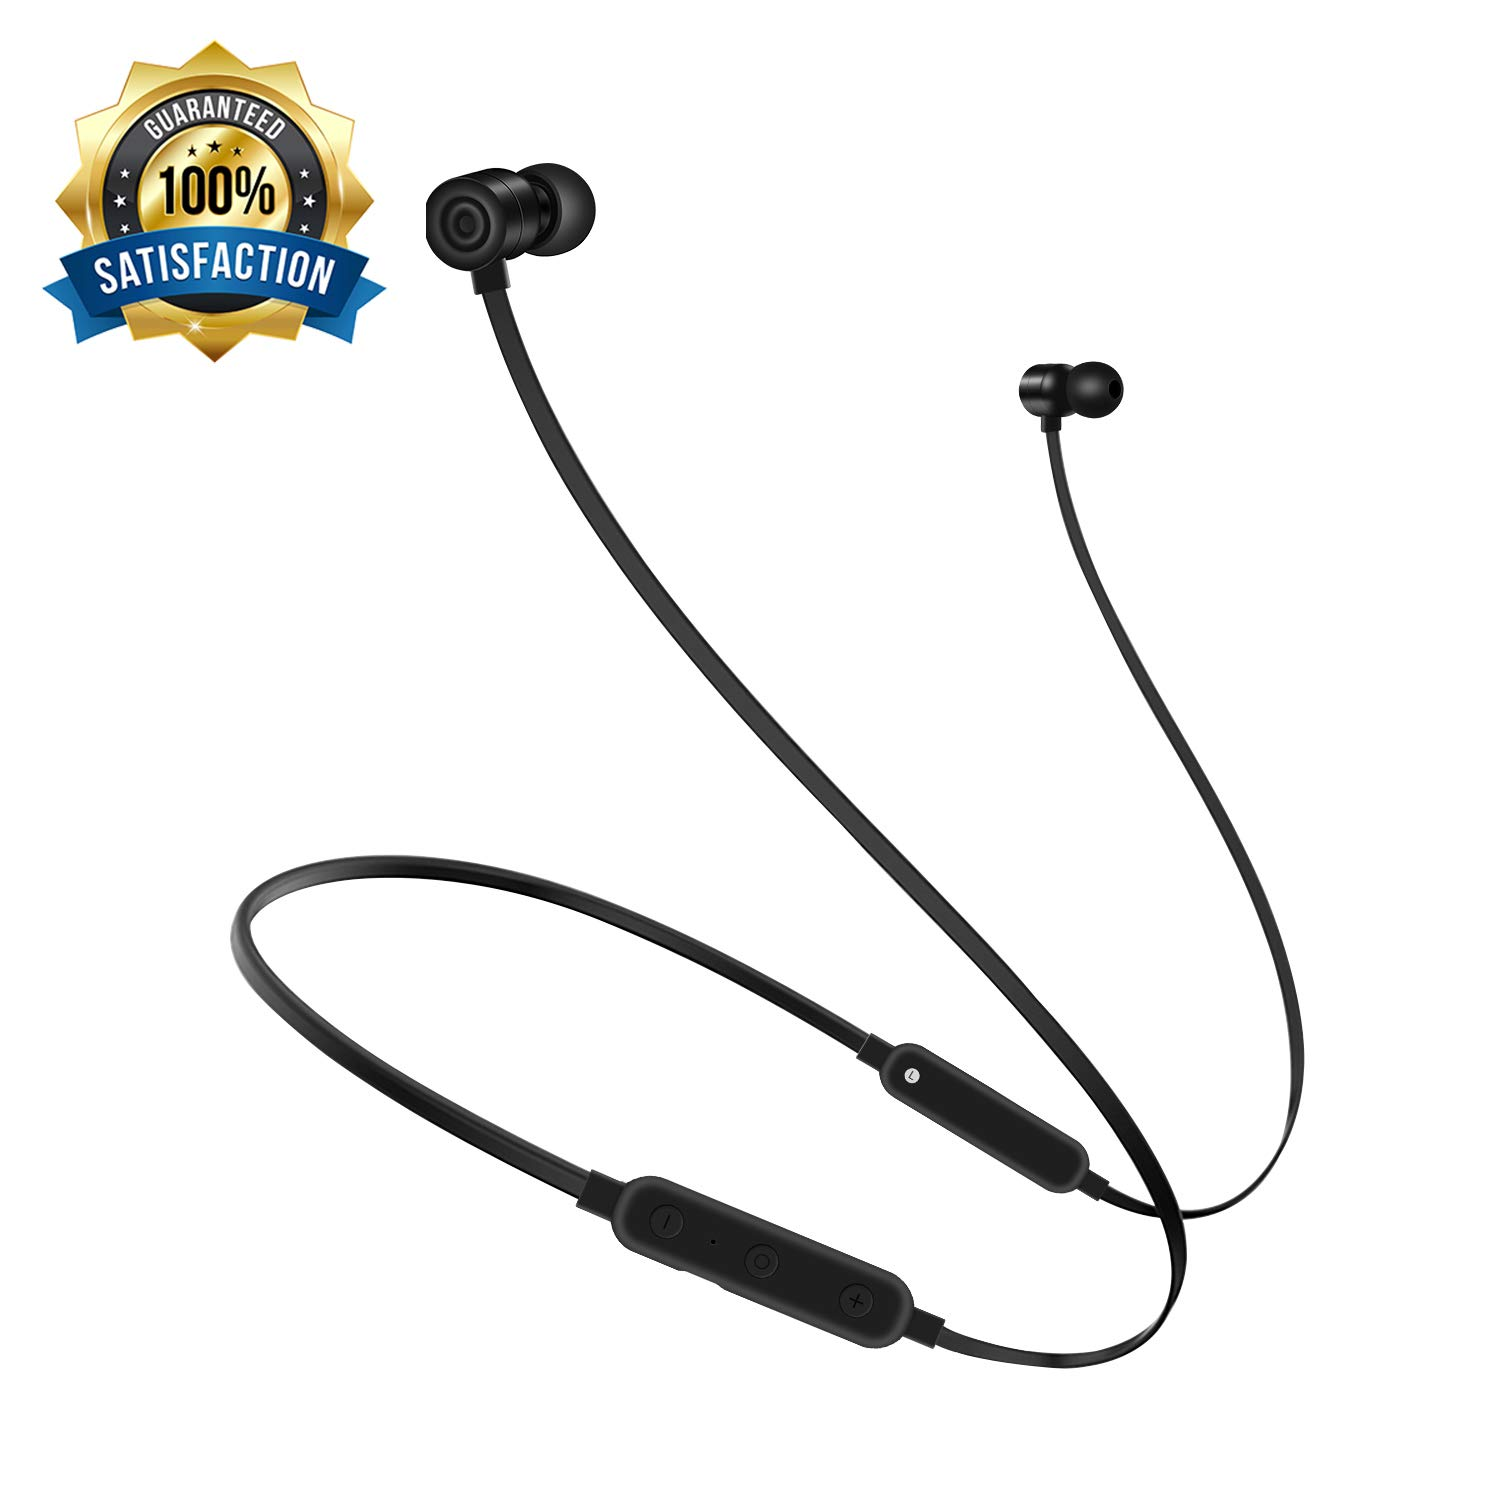 Bullker Upgrade 2018 Bluetooth Earphones, Neckband Bluetooth Headphones, Magnetic Wireless Earphones Without Pain Suitable for All Ears, Ultra-Long Play Music Time Sports Earphones for iOS Android